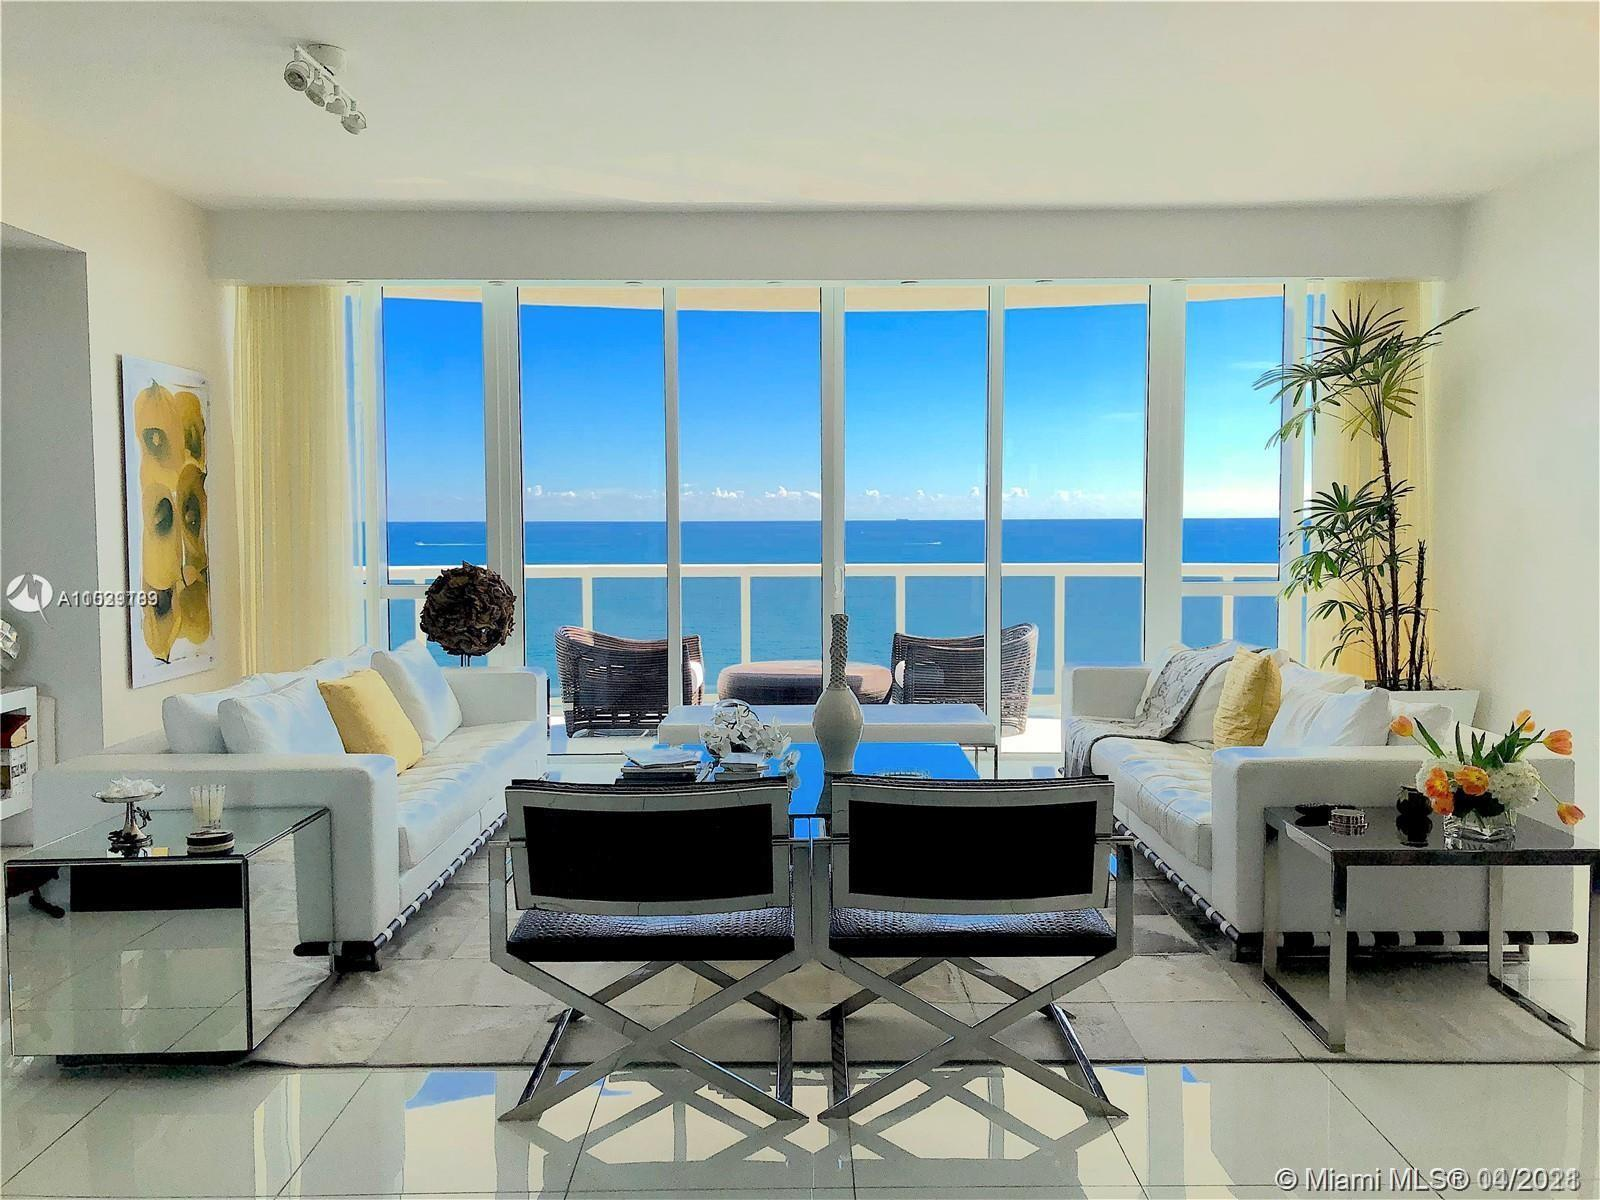 Welcome home. As you exit the private elevator directly into your residence and enjoy the 180-degree